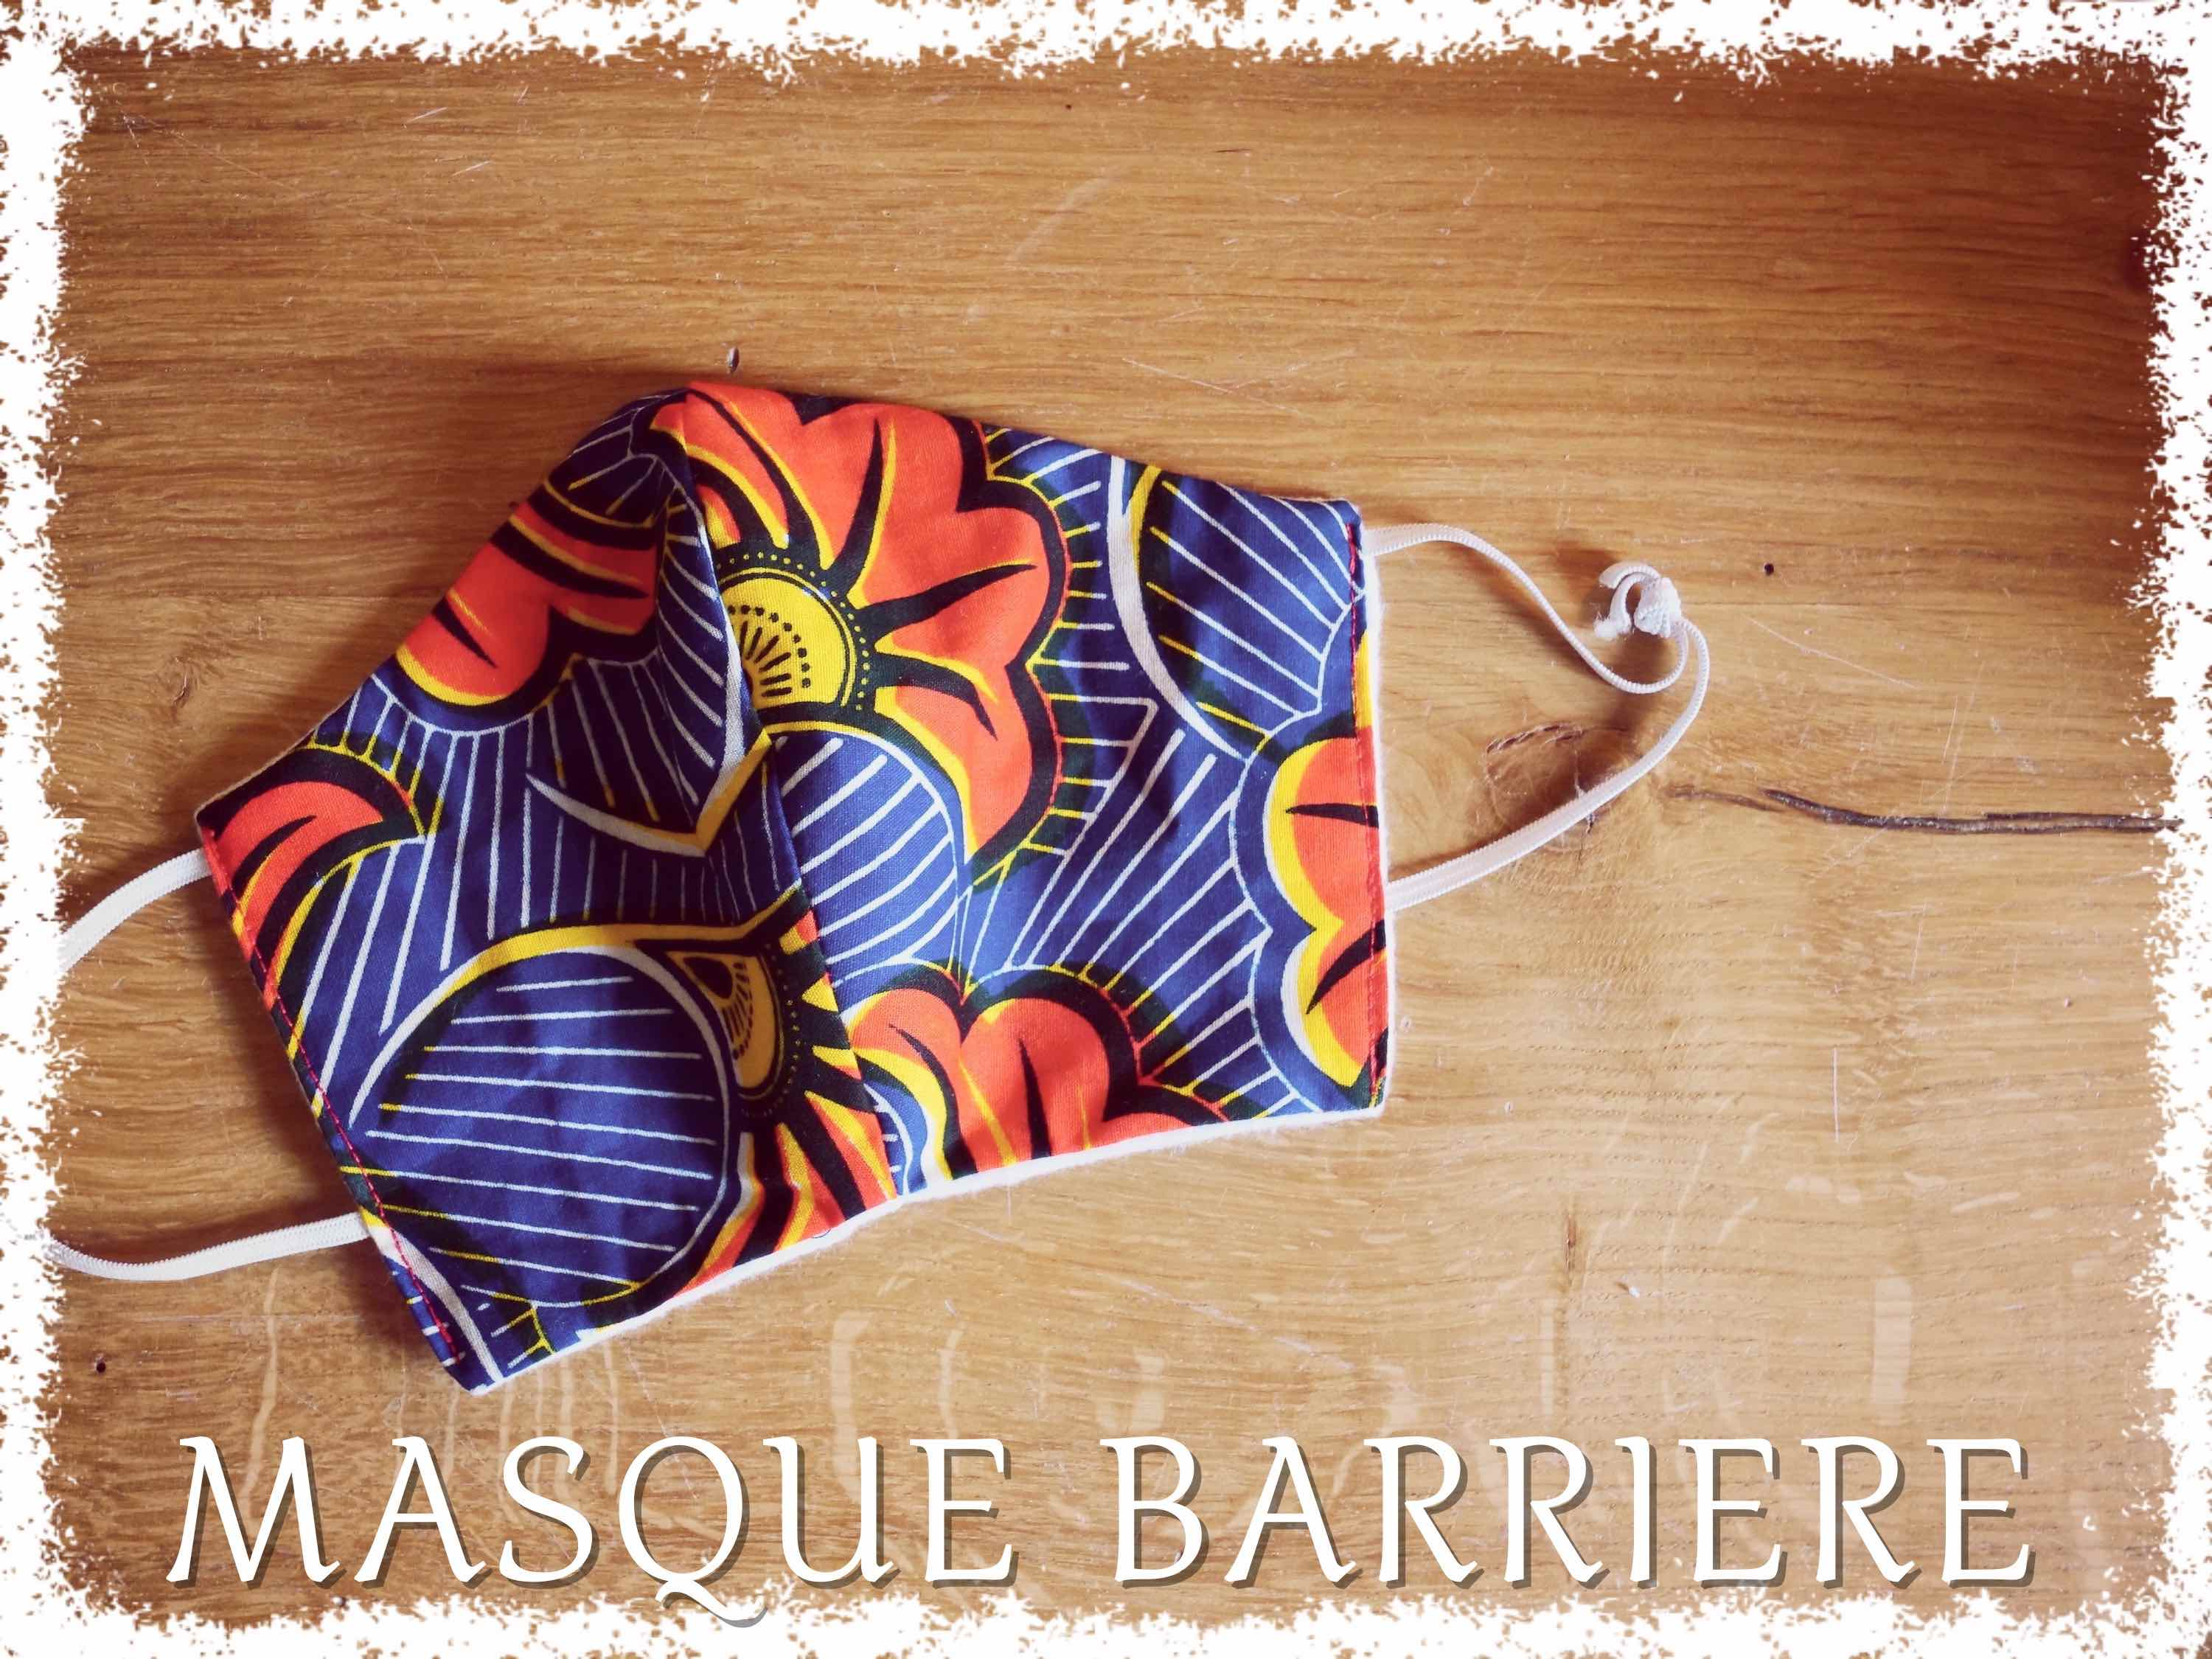 Masque Barriere